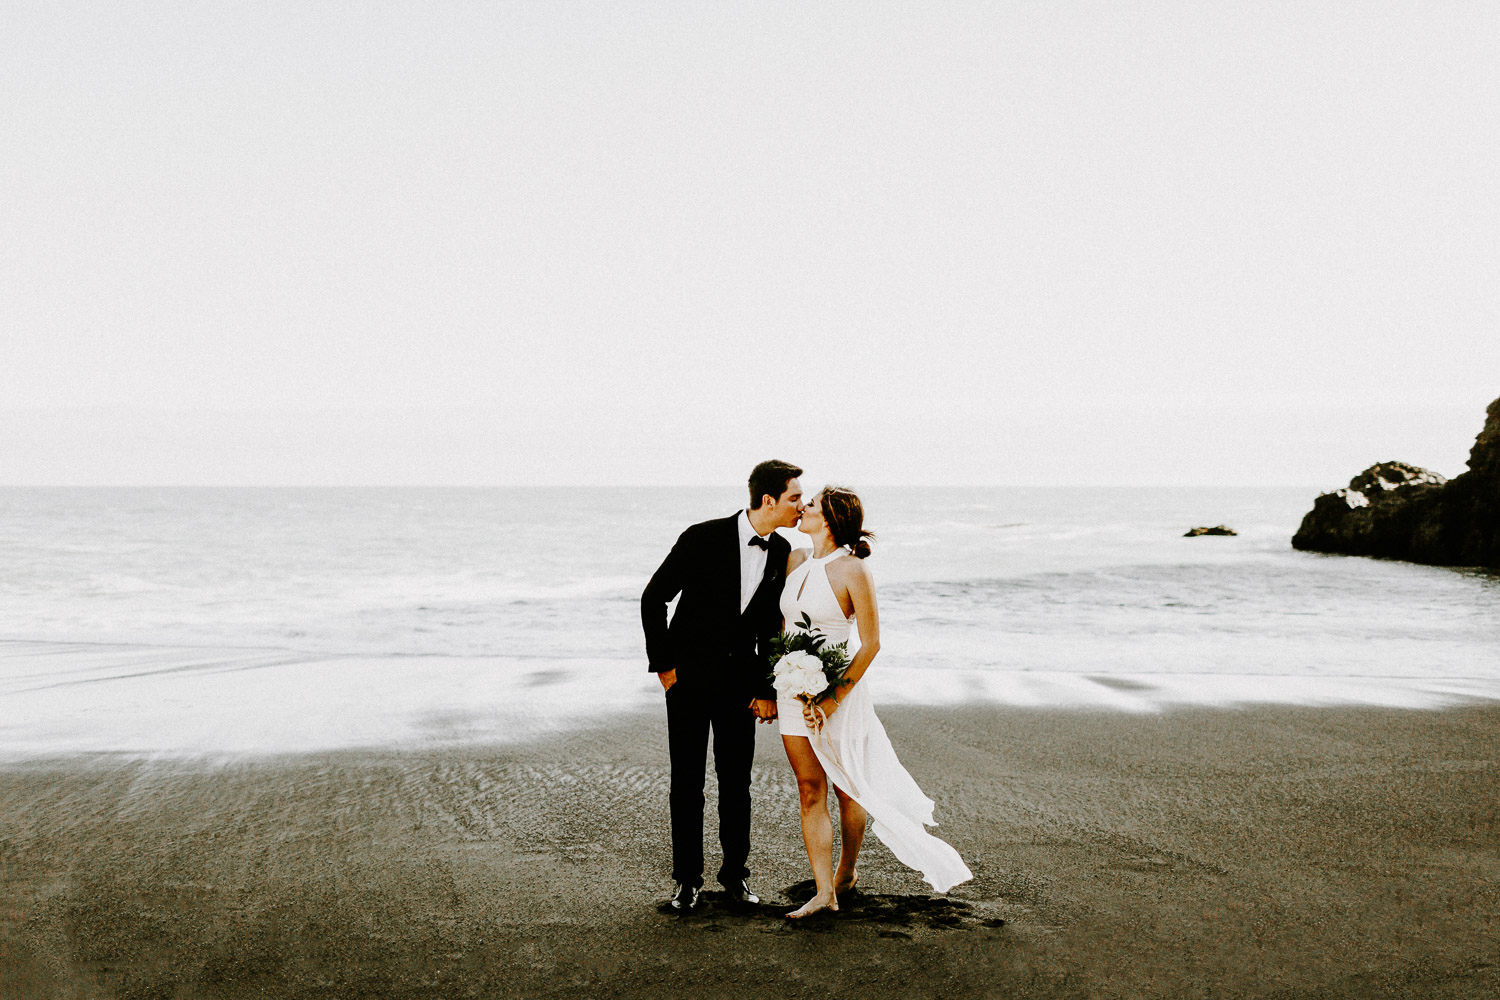 Image of groom and bride kiss each on beach